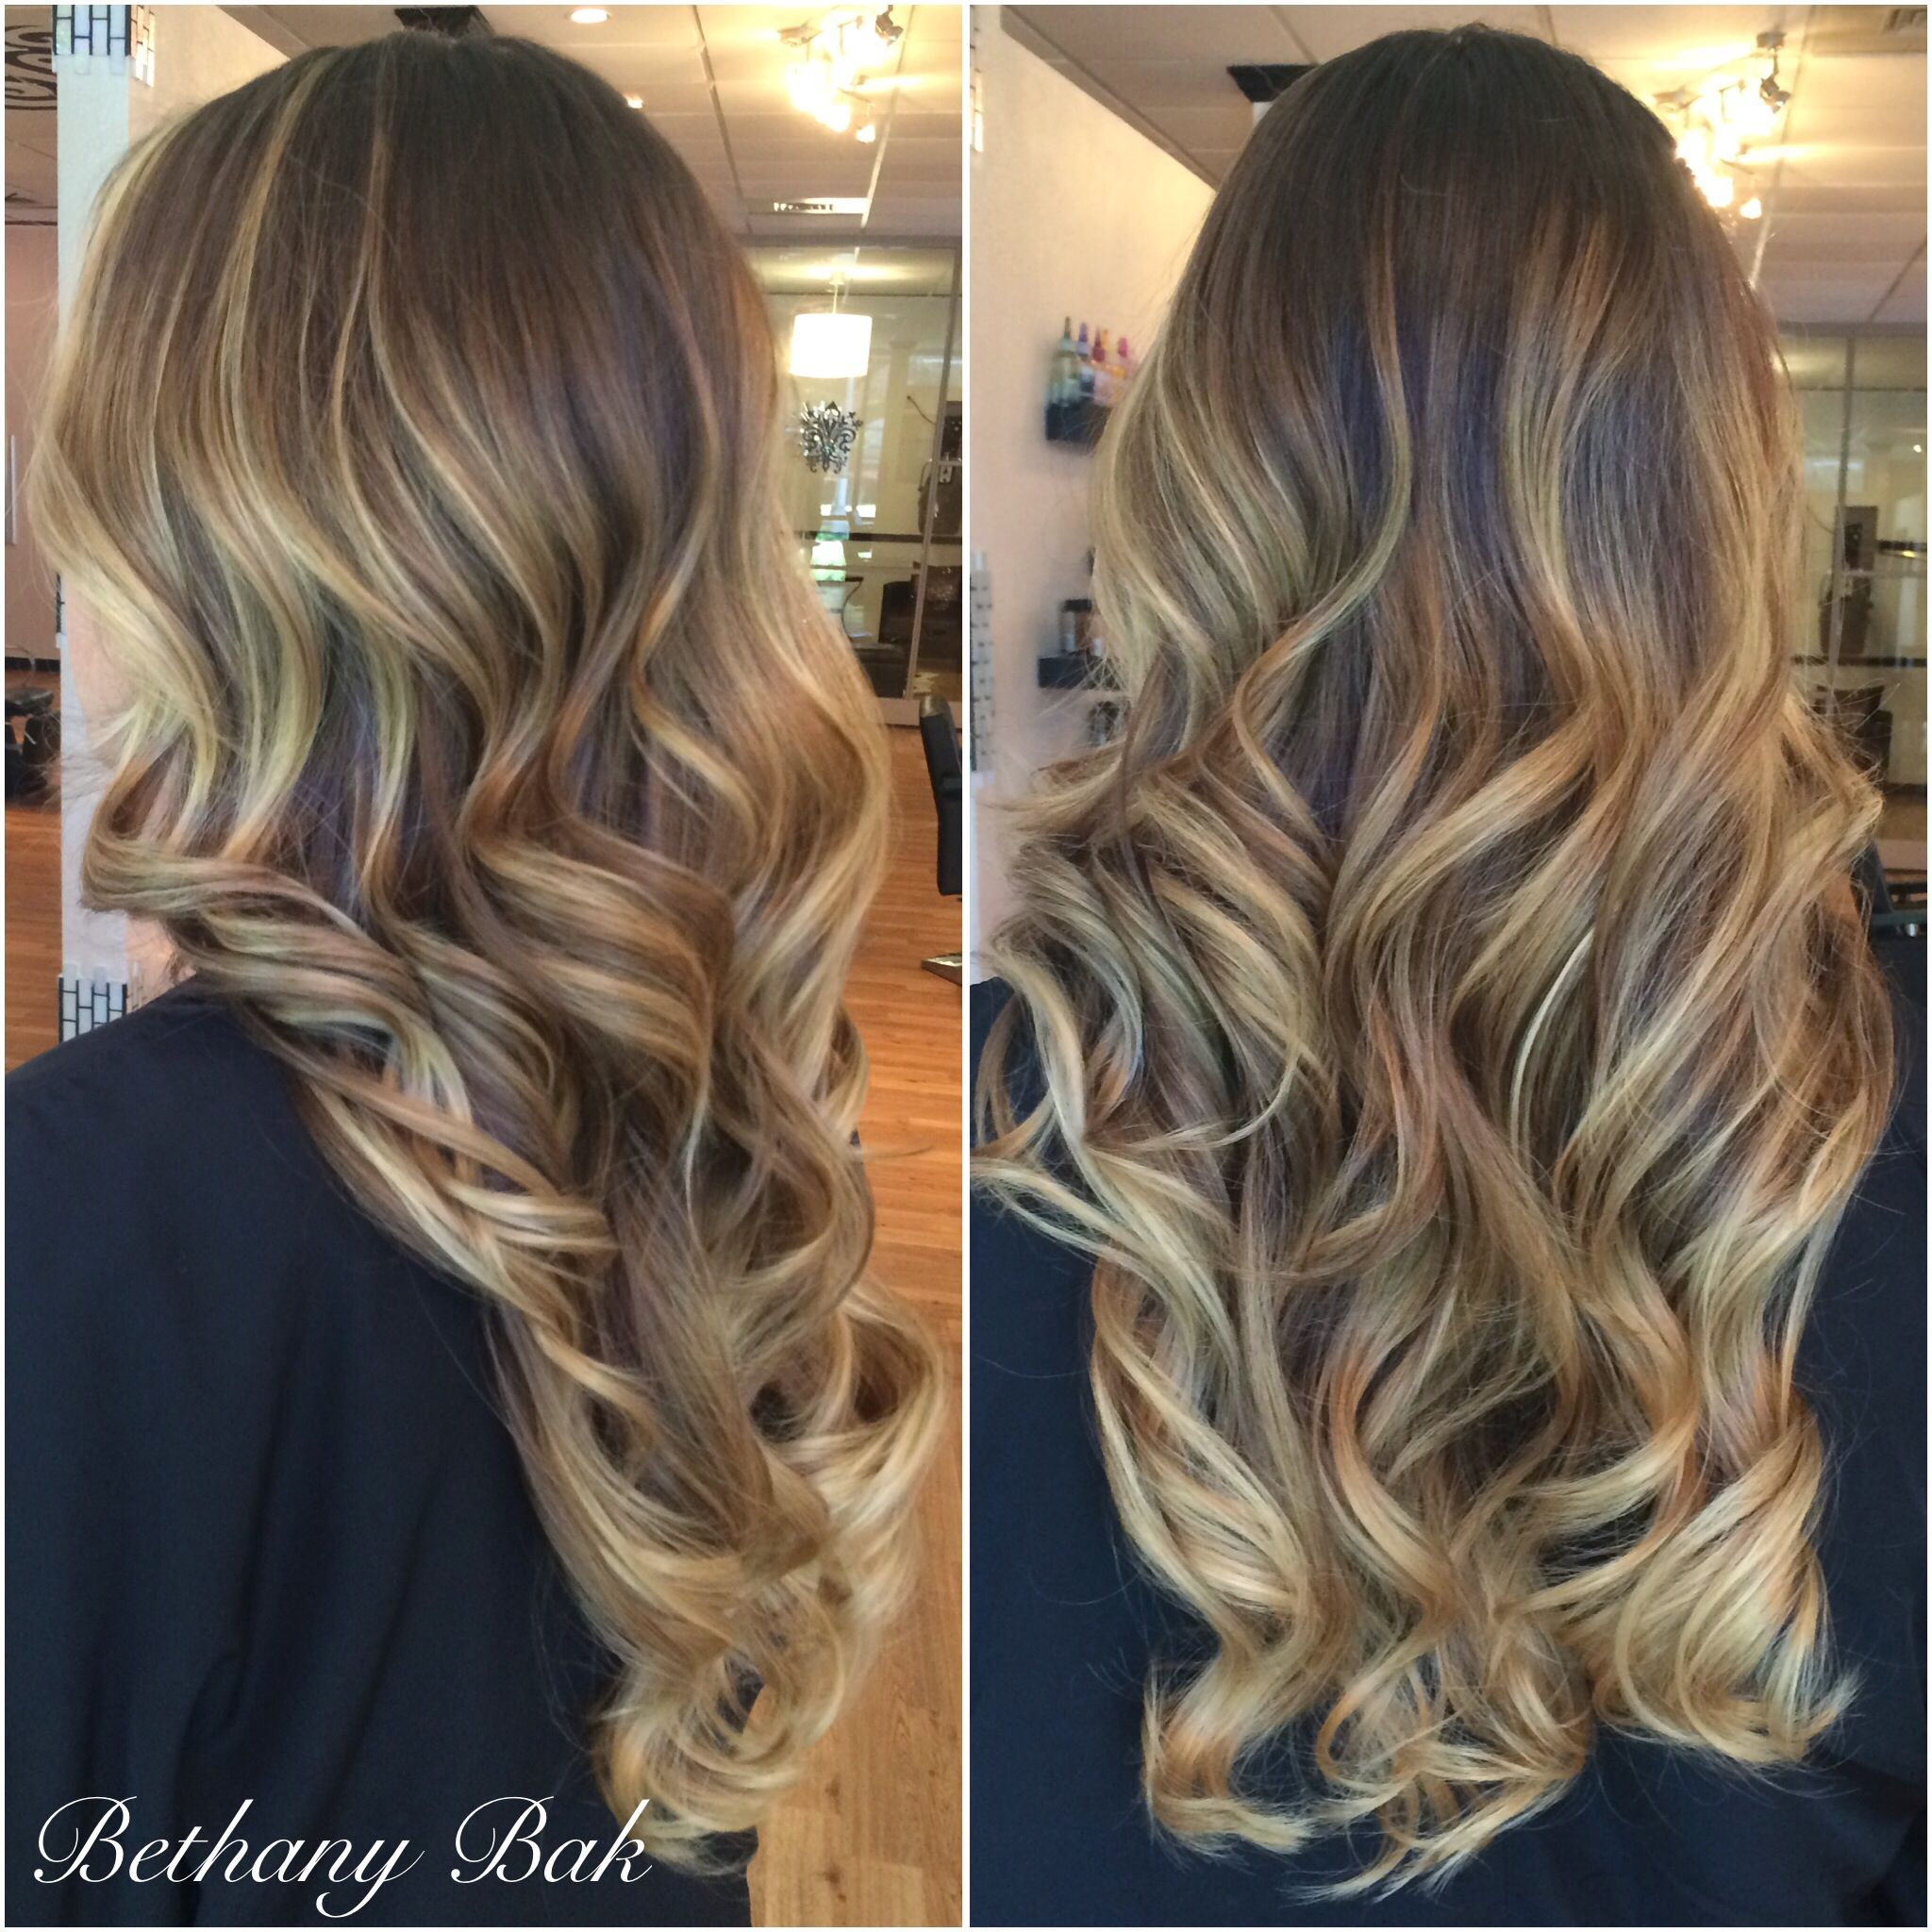 blonde balayage on brown hair perfect summer color ombr styles balayage pinterest. Black Bedroom Furniture Sets. Home Design Ideas